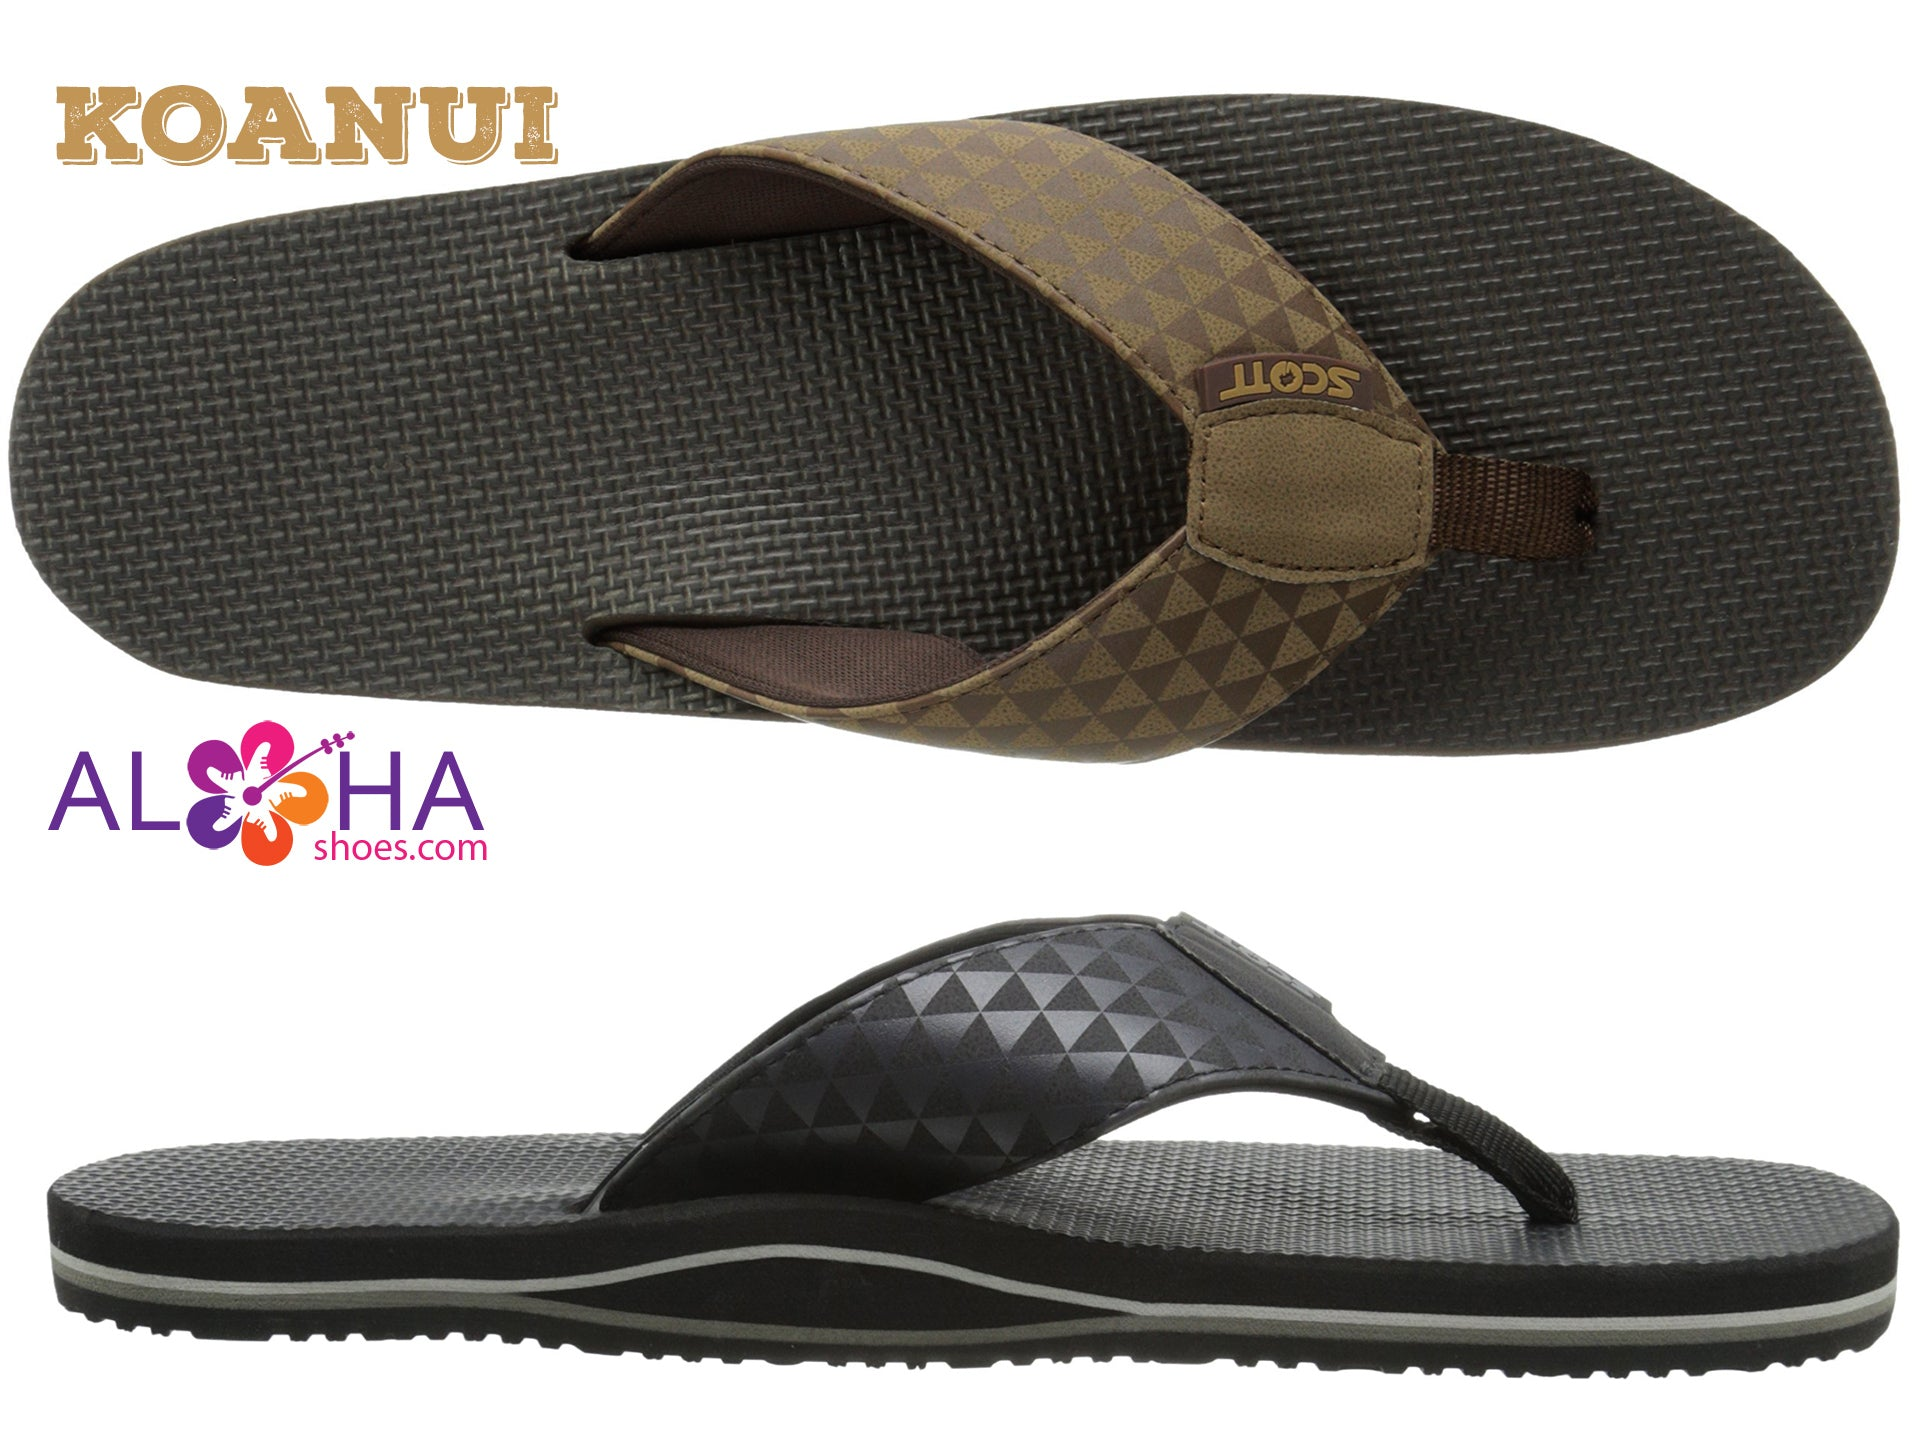 Scott Hawaii Men's Koanui Sandals - AlohaShoes.com